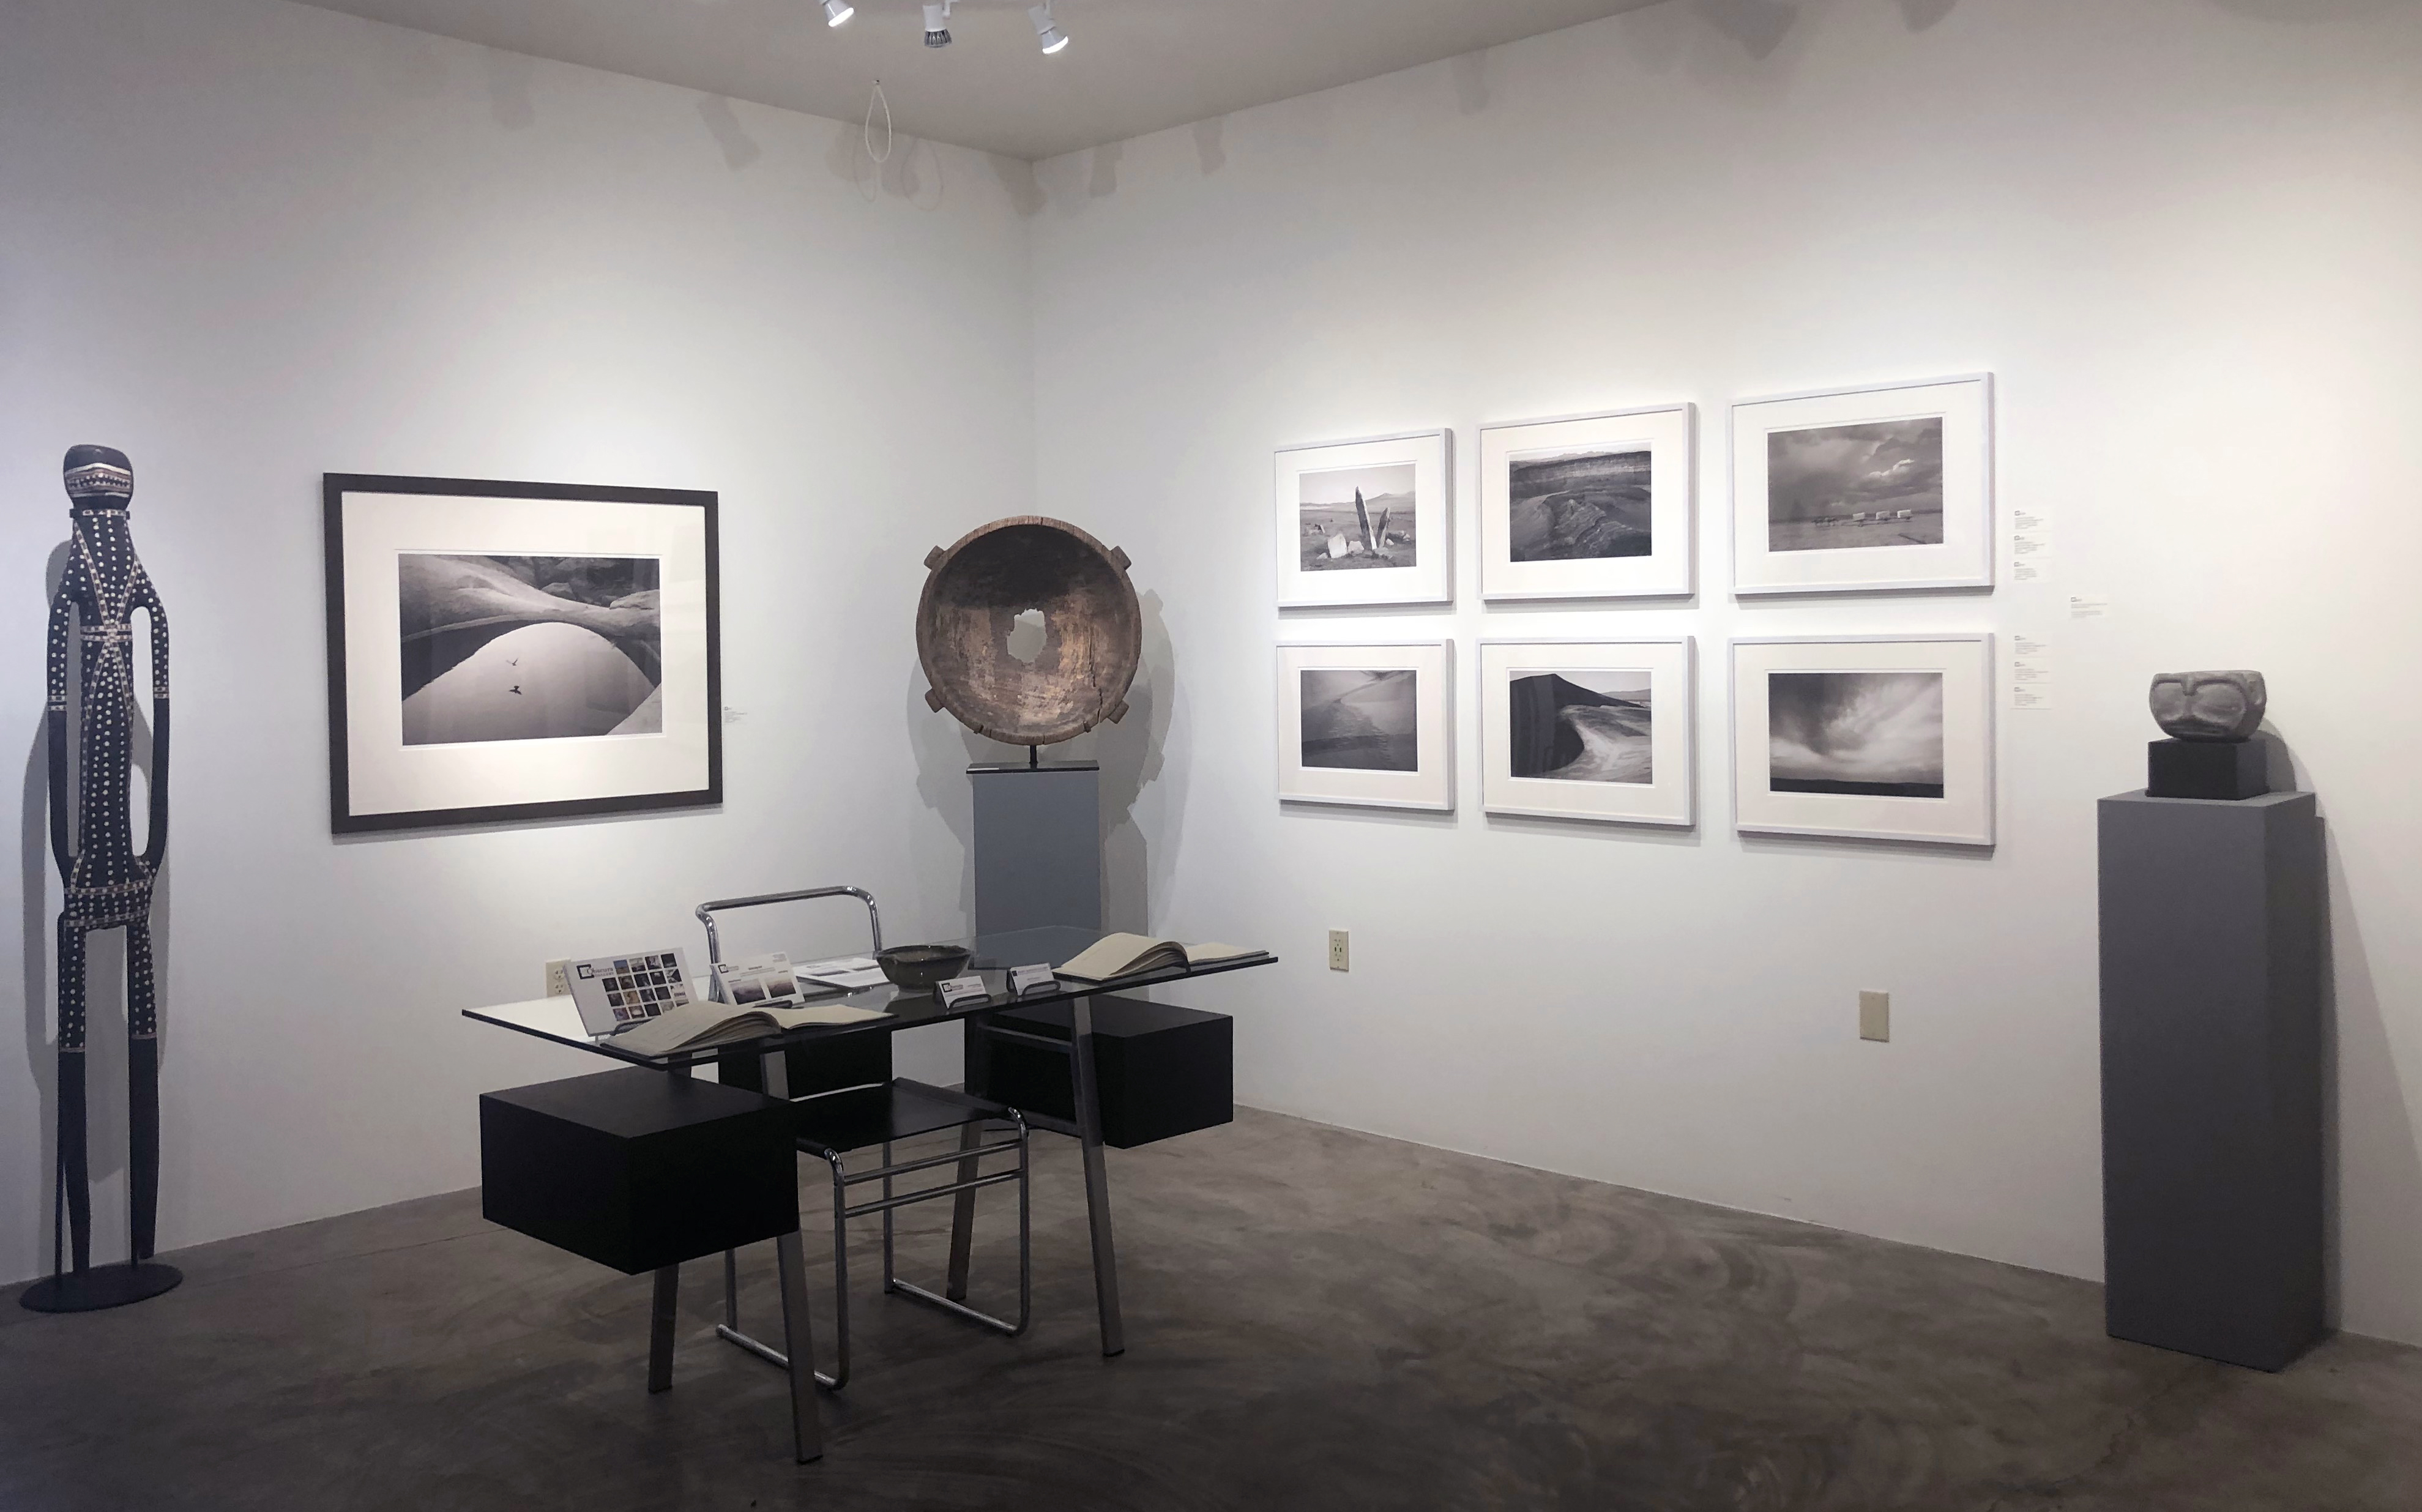 Installation gallery image of the exhibit Traversing East with Michael Berman and Neil Folberg